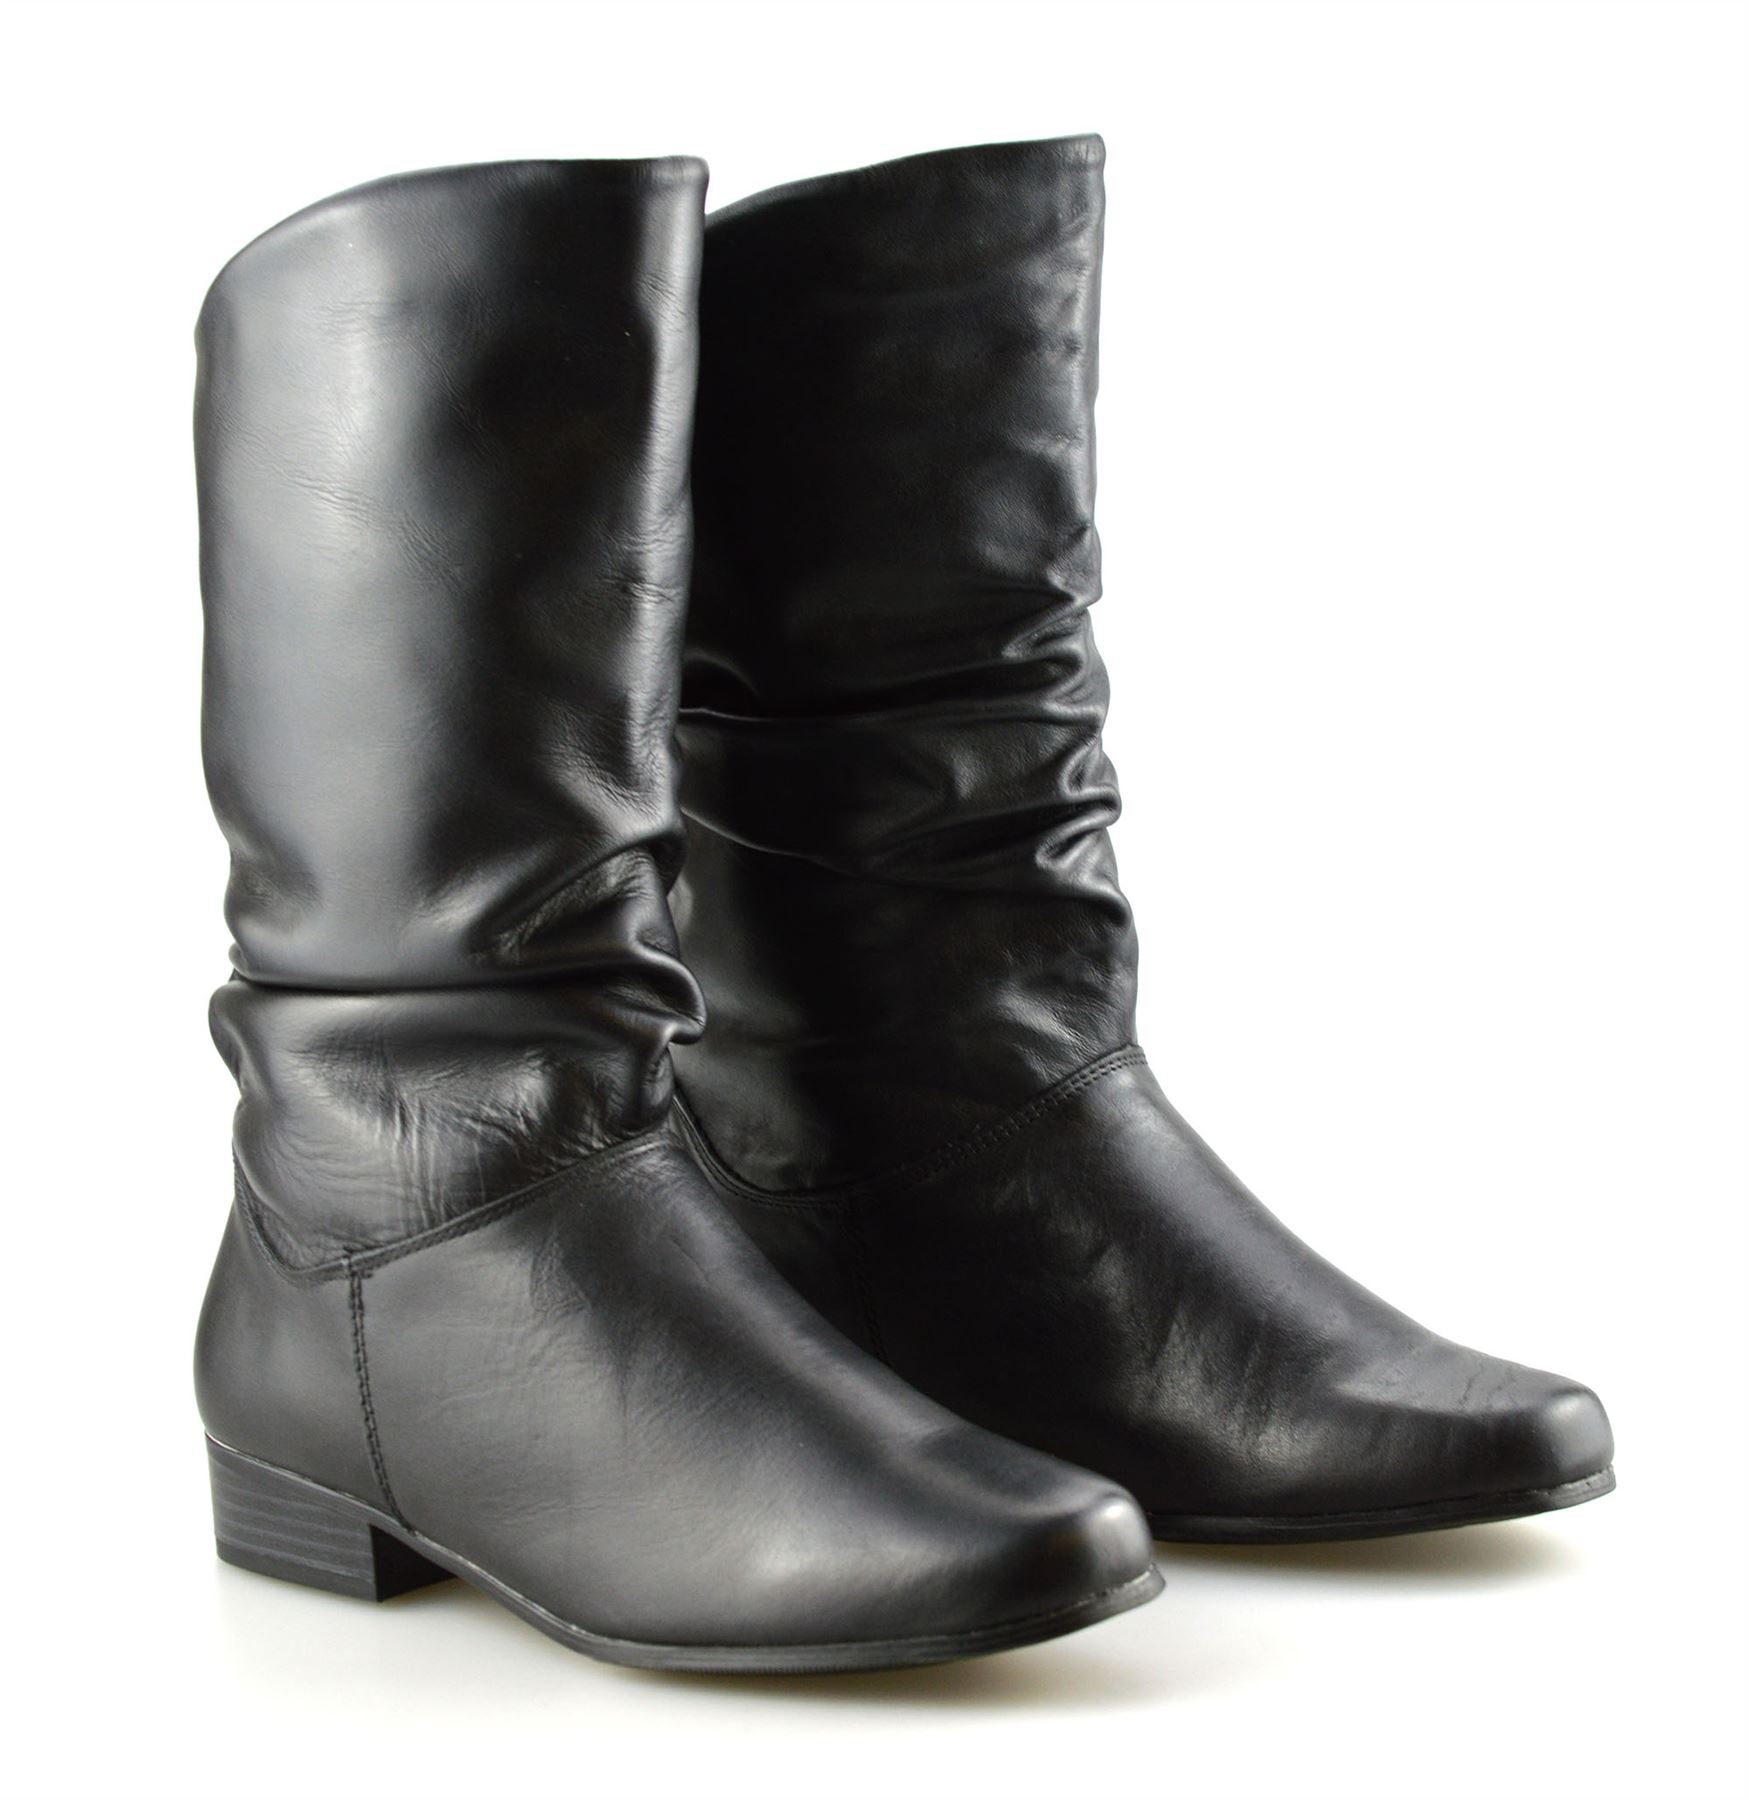 10af4b8907d Details about Ladies Womens New Leather Mid Calf Low Flat Heel Slouch  Riding Boots Shoes Size